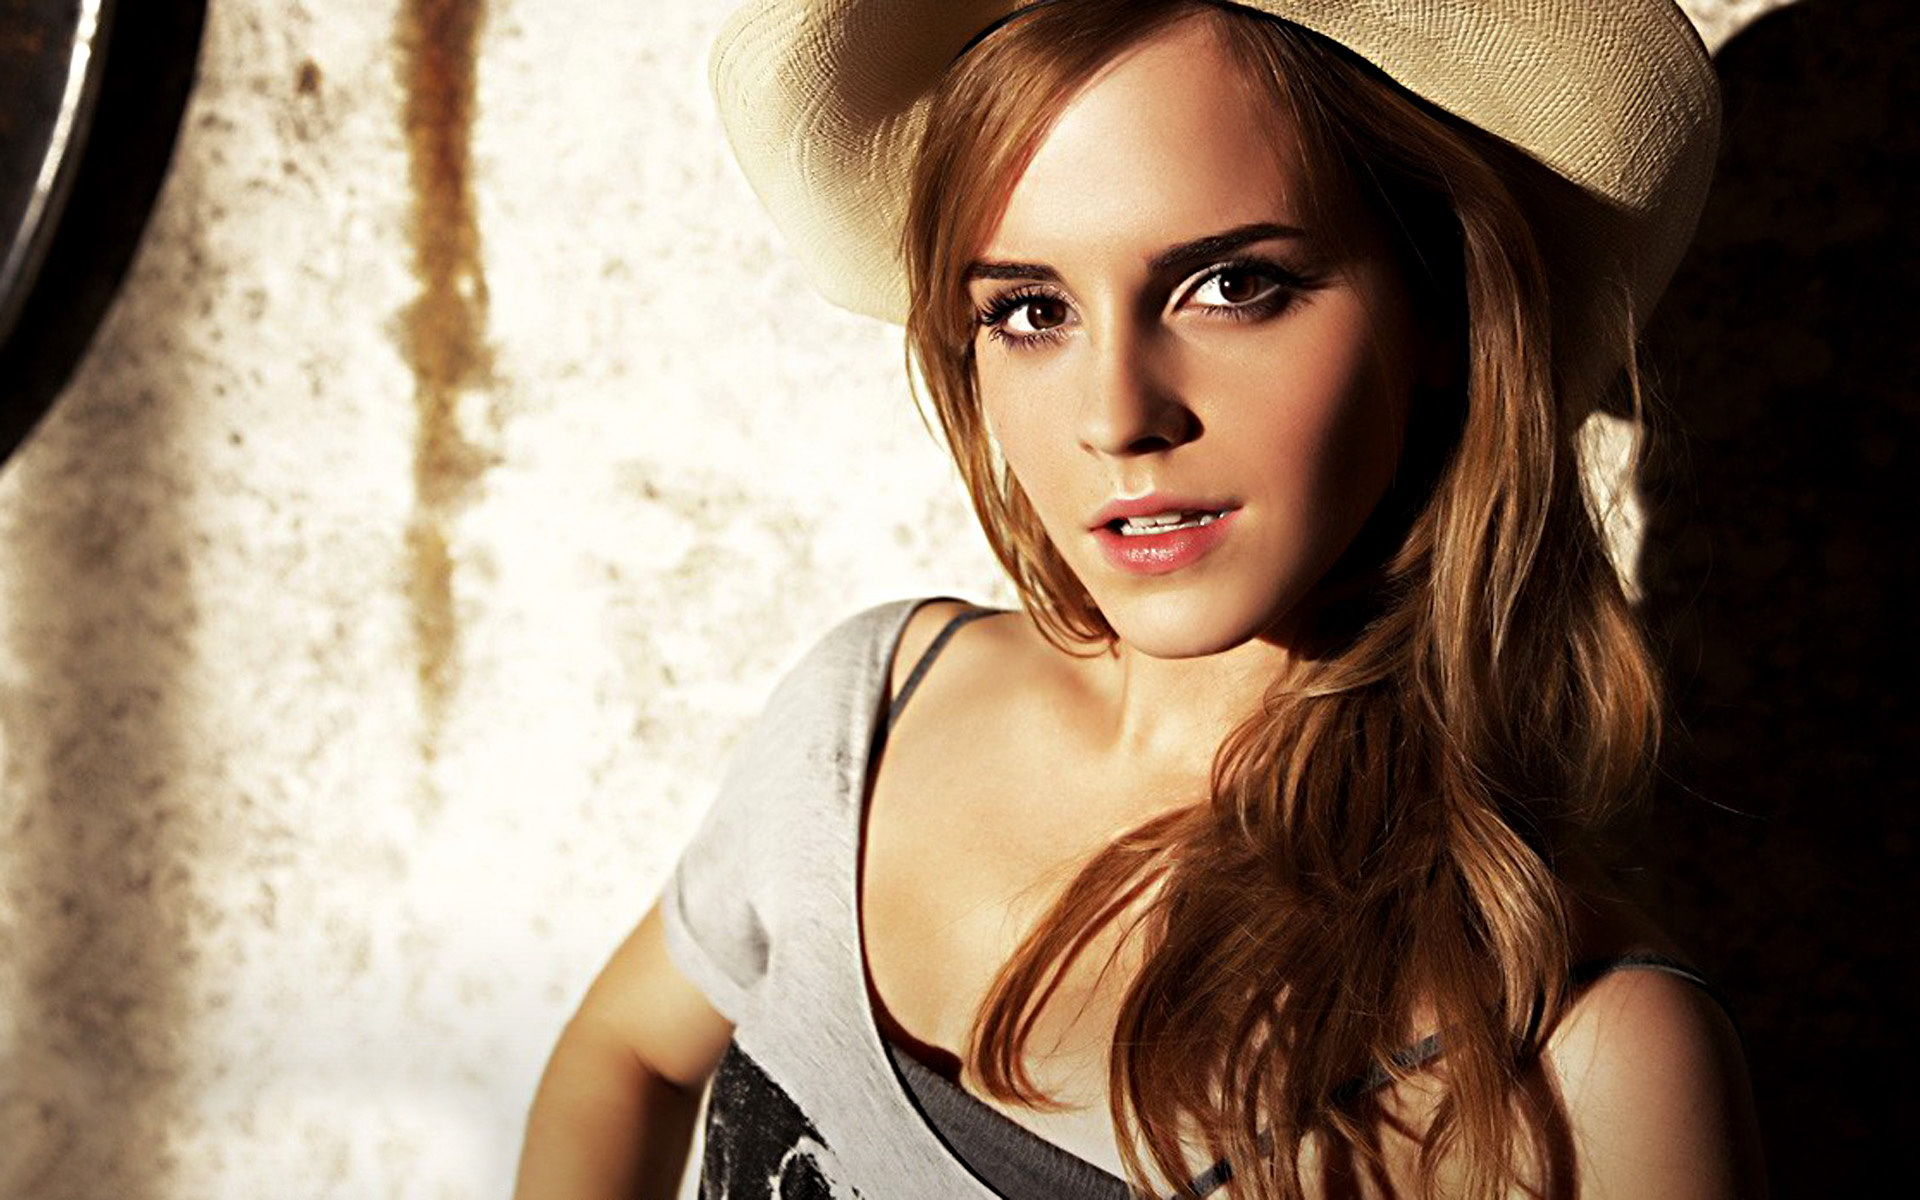 the sexiest emma watson hd wallpapers - all hd wallpapers